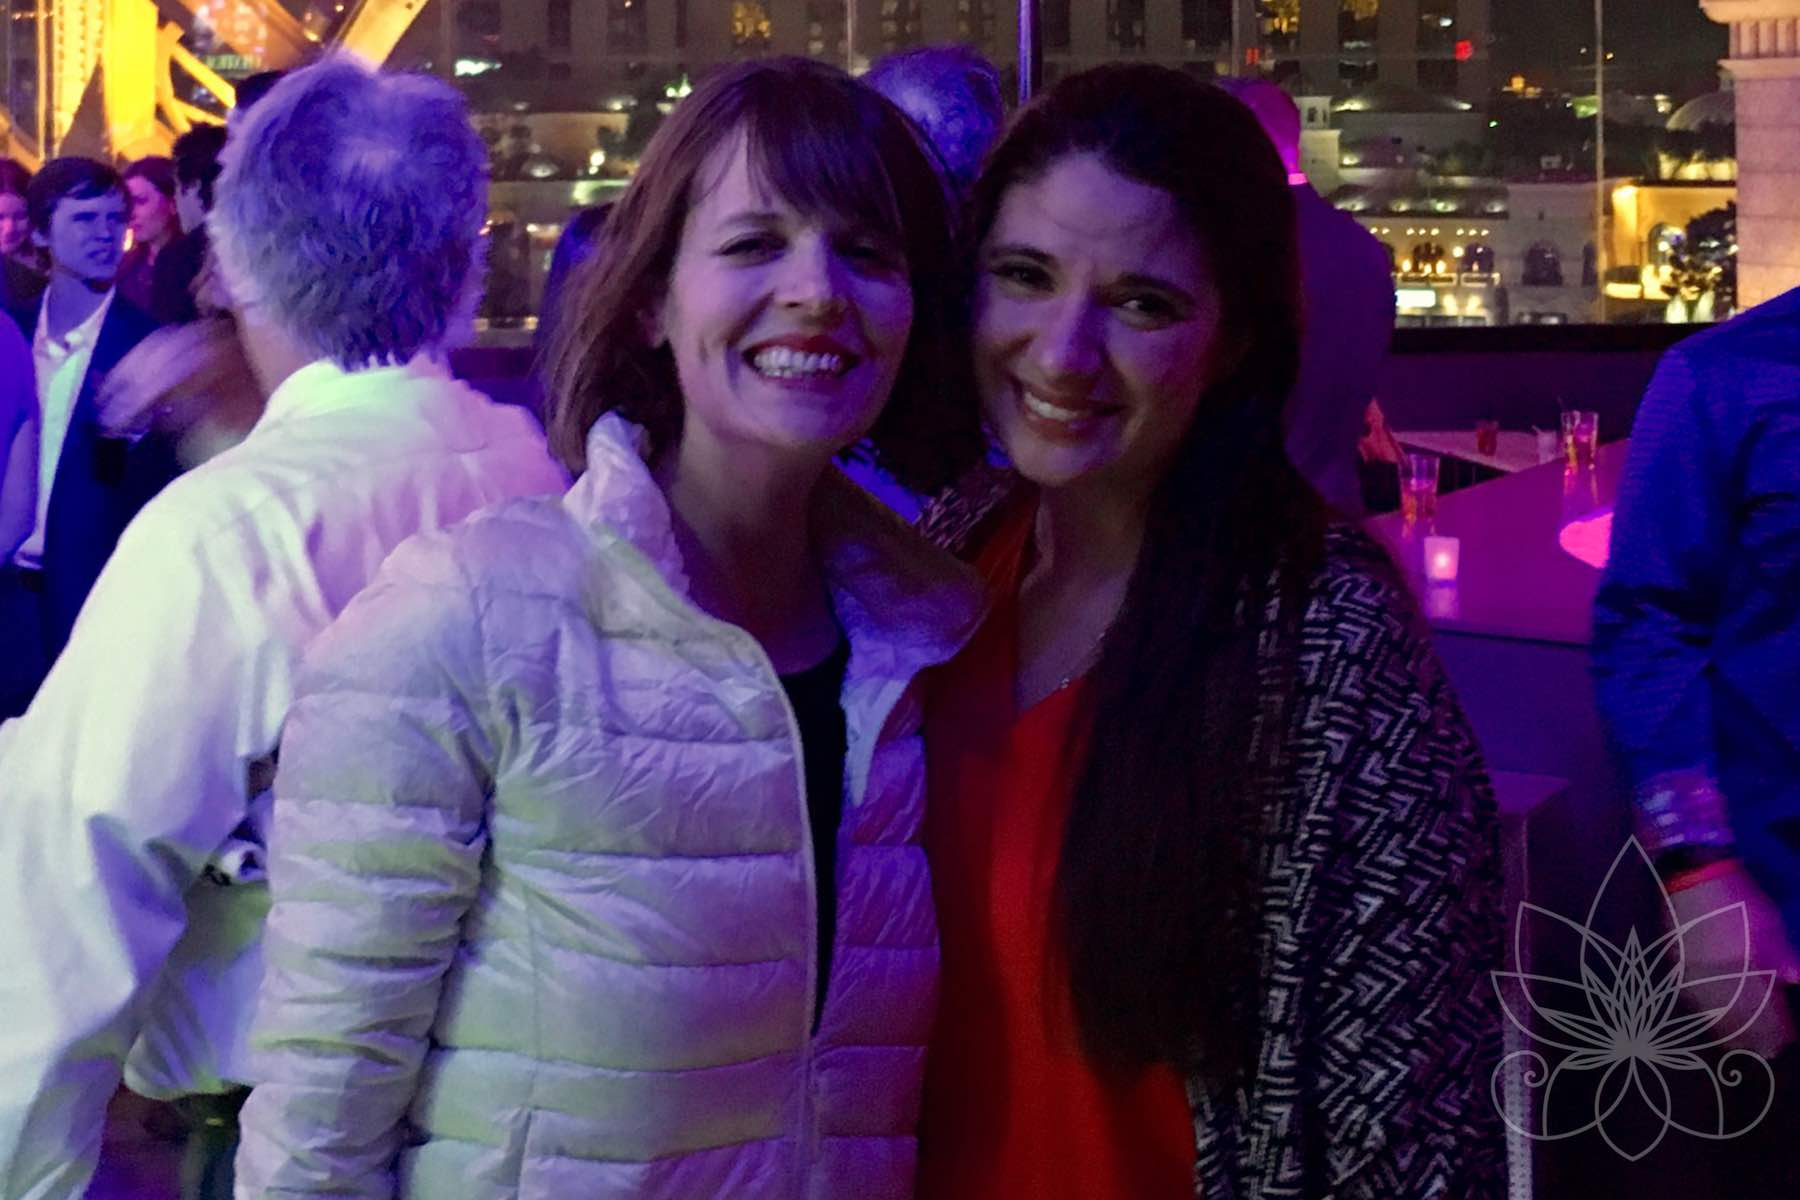 Stacey Mulvey and Allie McAboy at The Cannabist Awards 2016 in Las Vegas